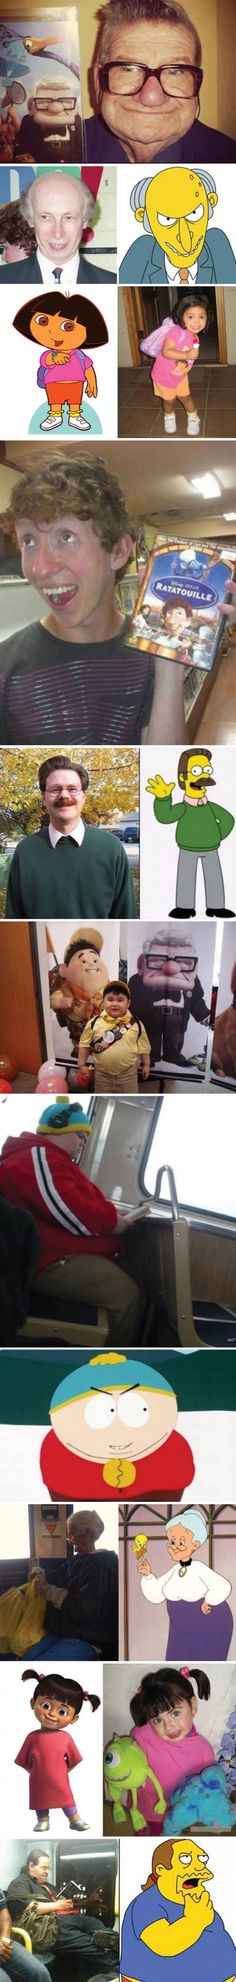 Cartoon characters vs real persons